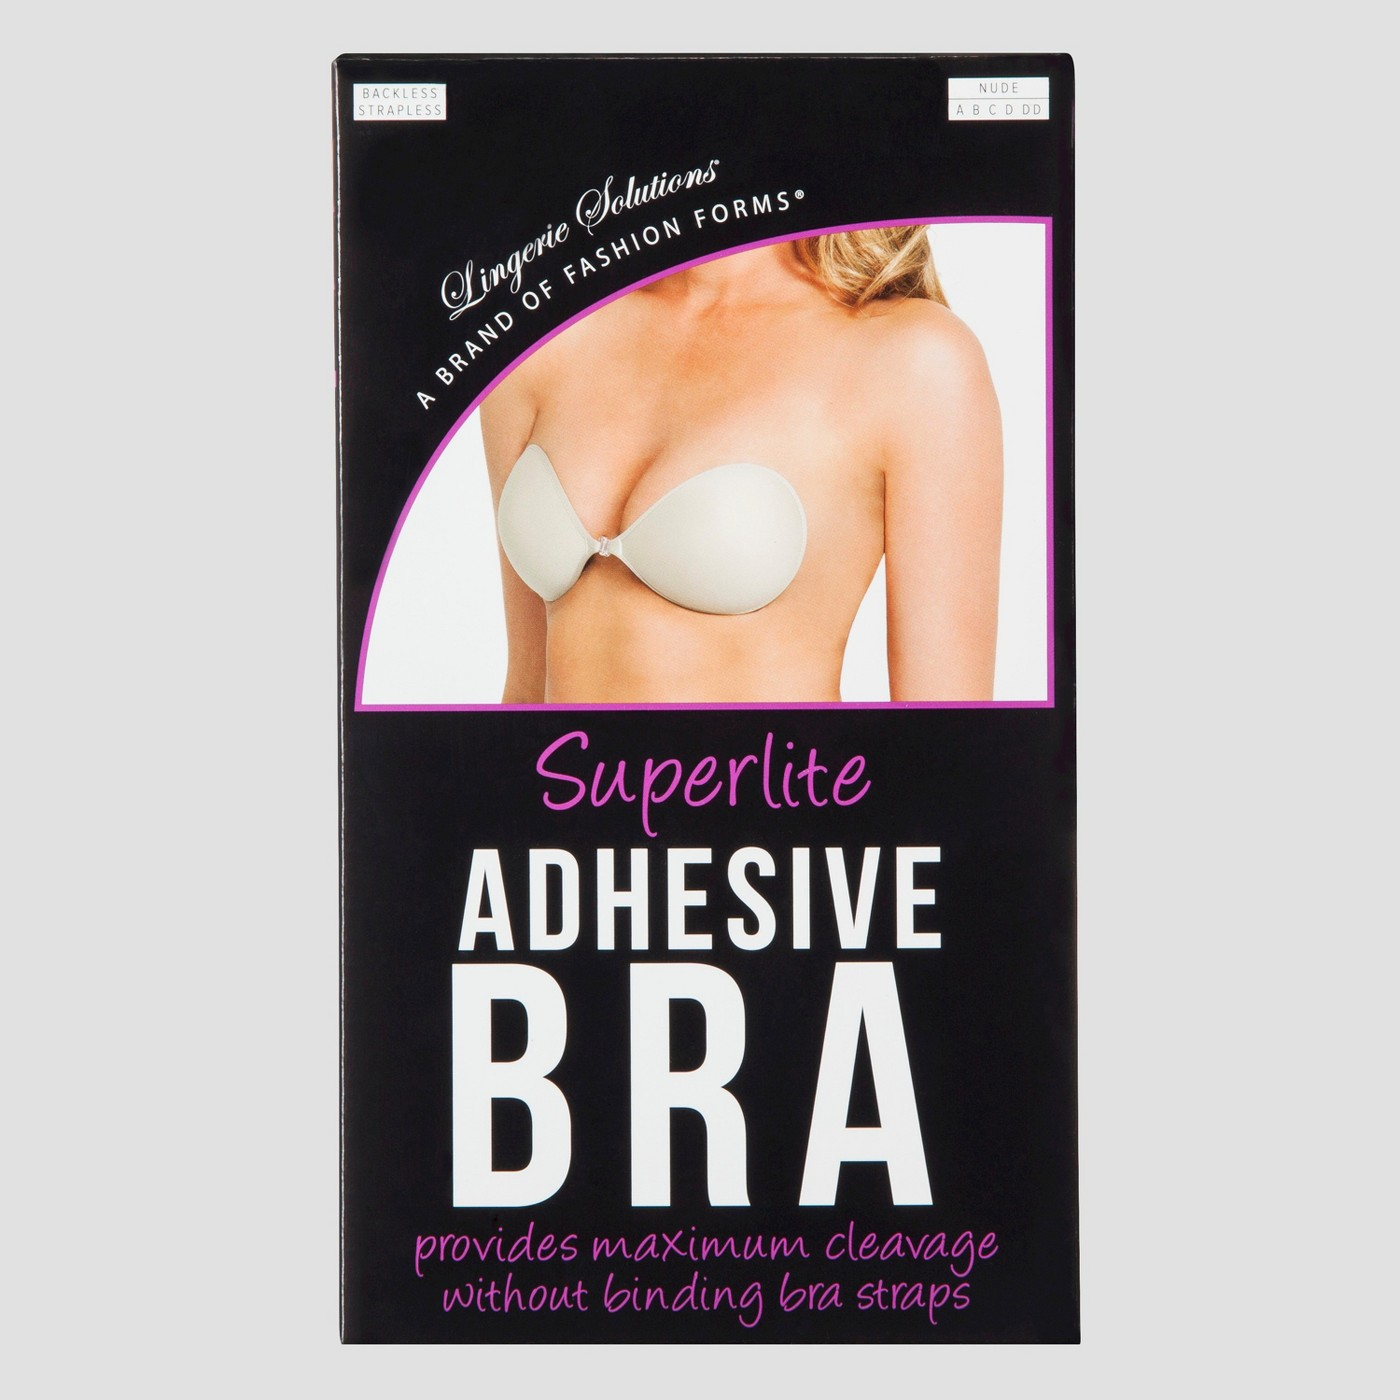 Fashion Forms Women's Superlite Adhesive Strapless Backless Bra - image 1 of 1